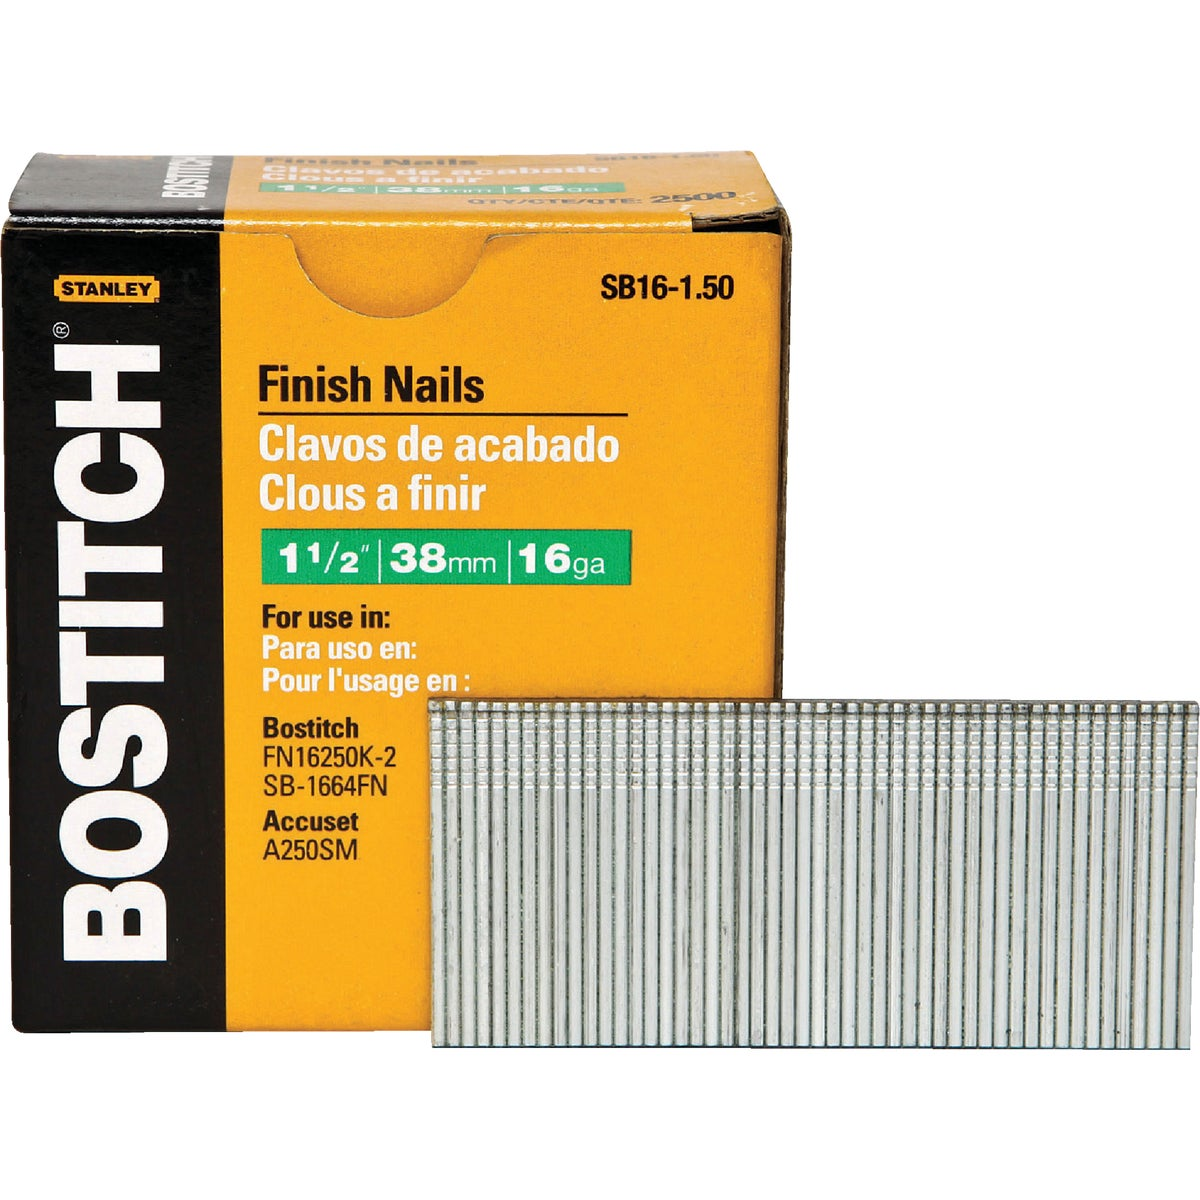 "1-1/2"" 16GA FINISH NAIL - SB16-1.50 by Stanley Bostitch"